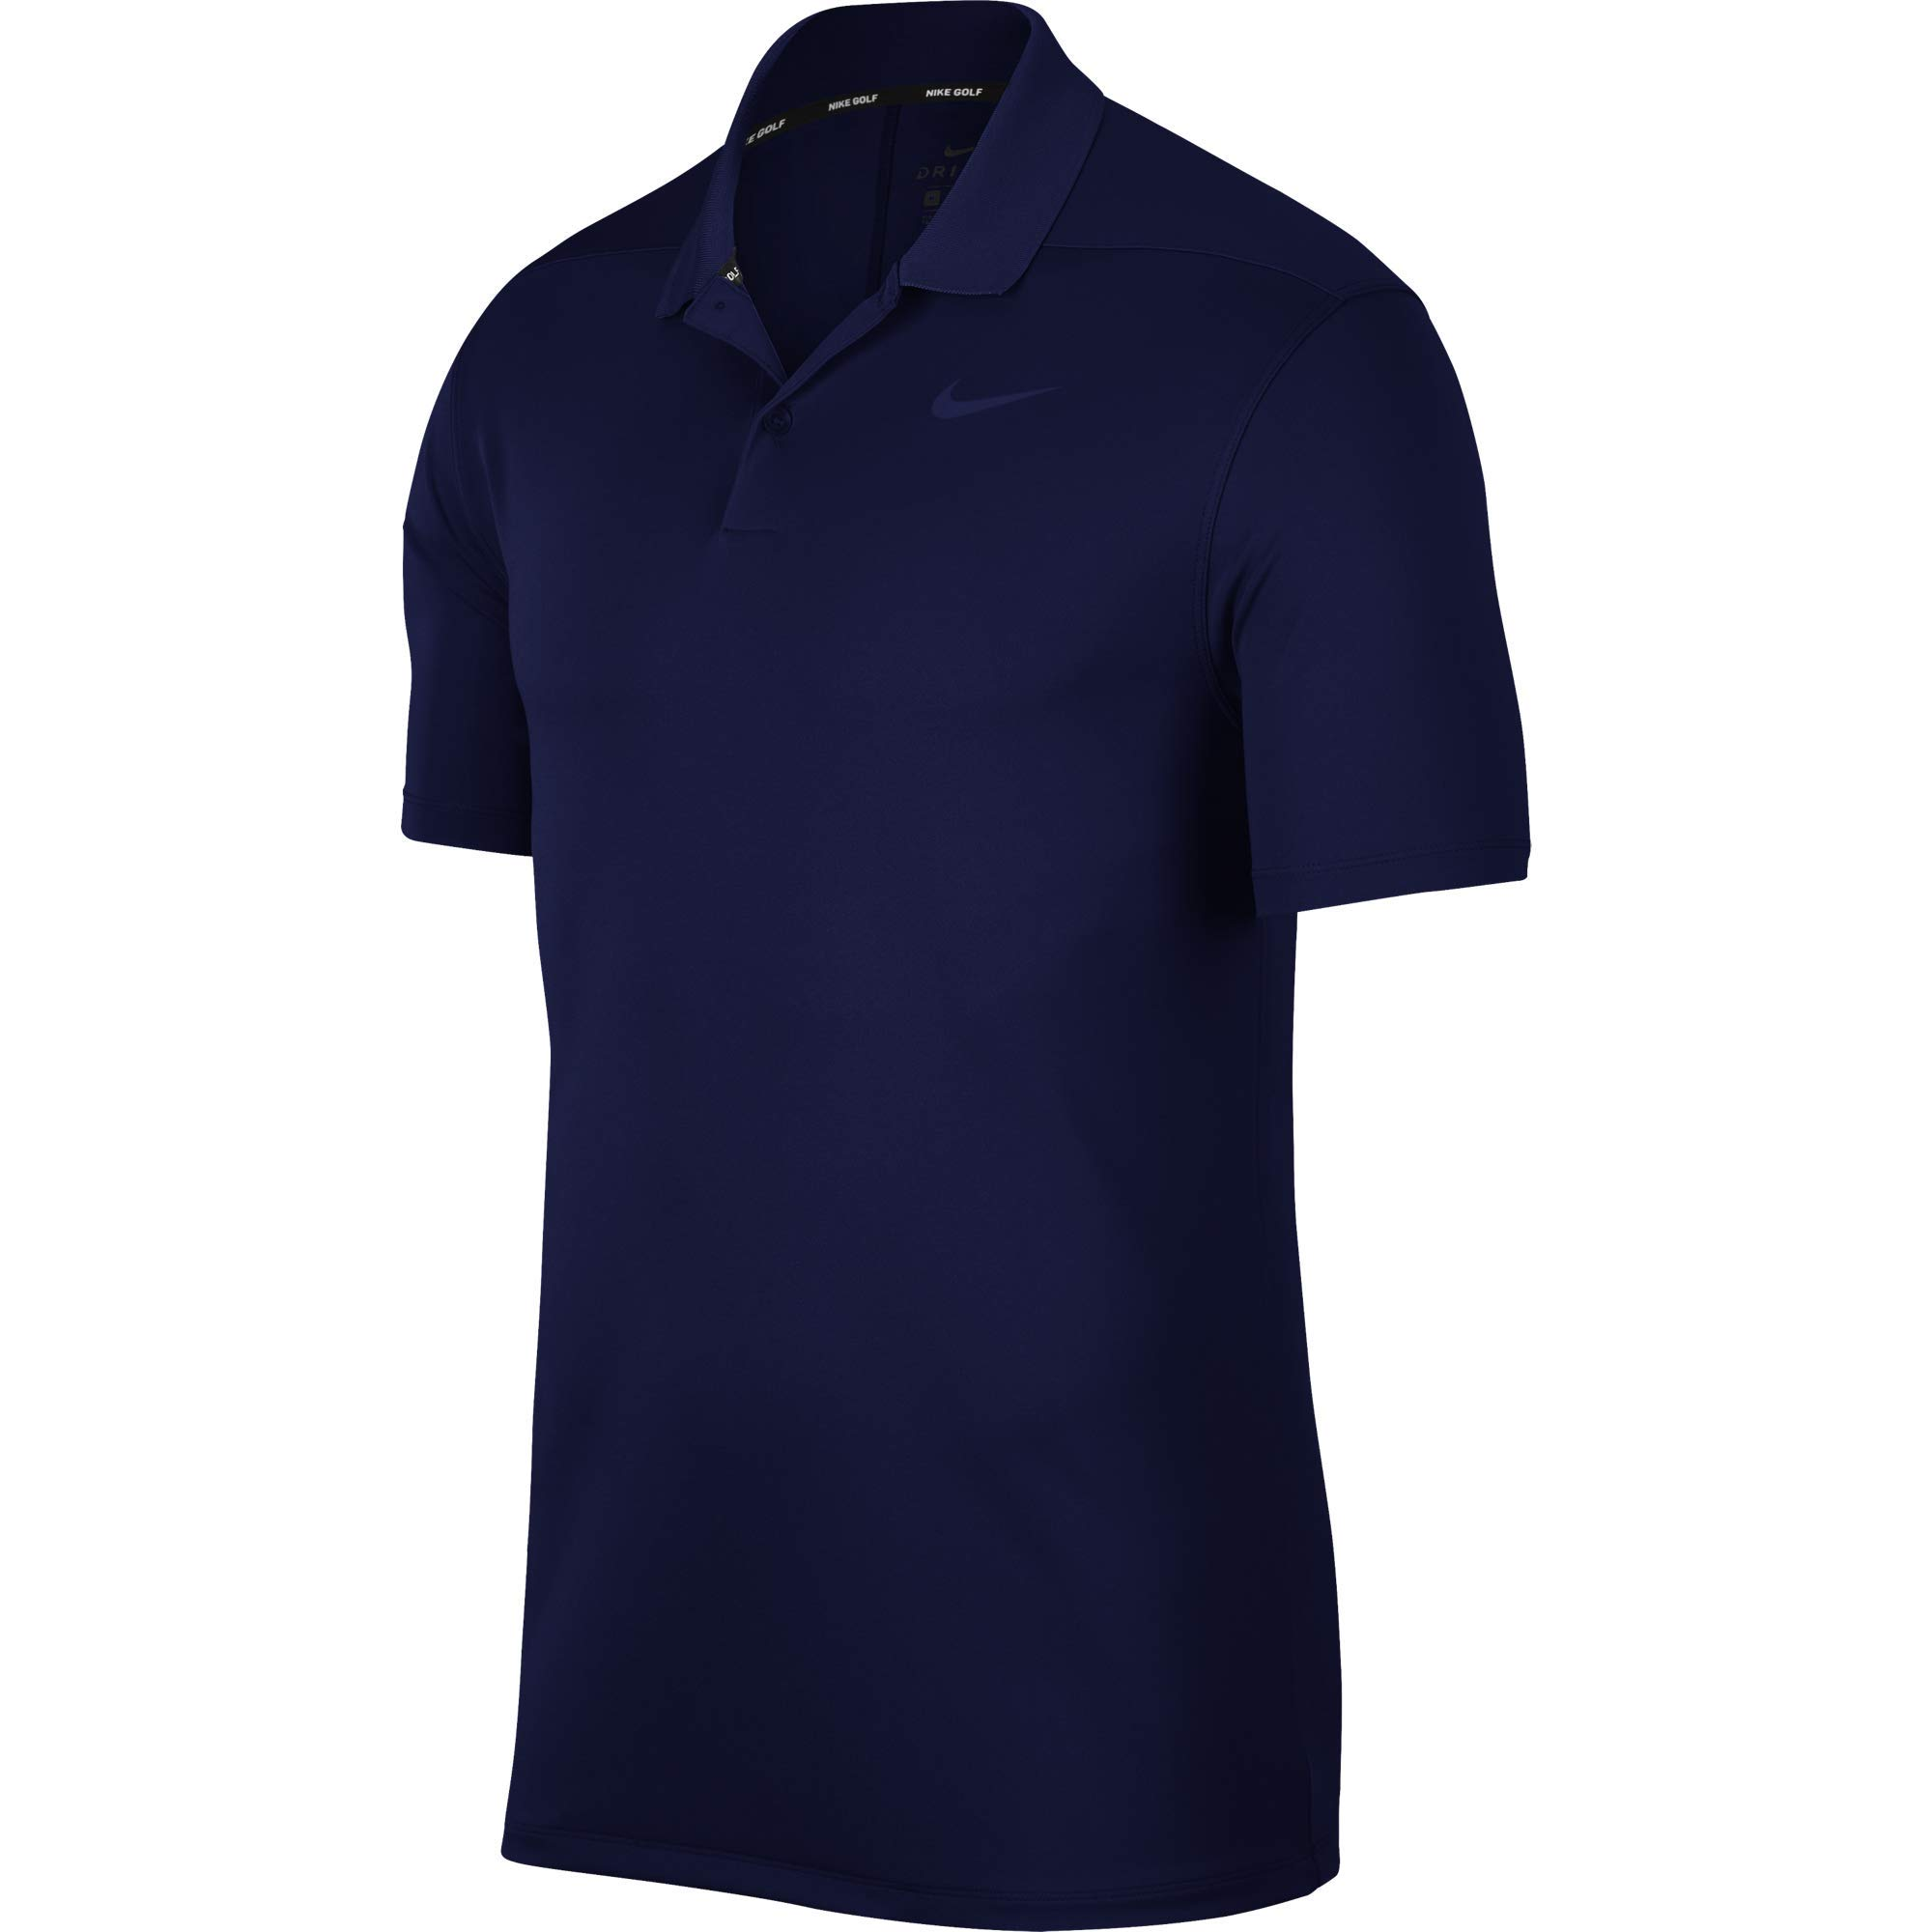 Nike Men's Dry Victory Polo Solid Left Chest, Blue Void, X-Large by Nike